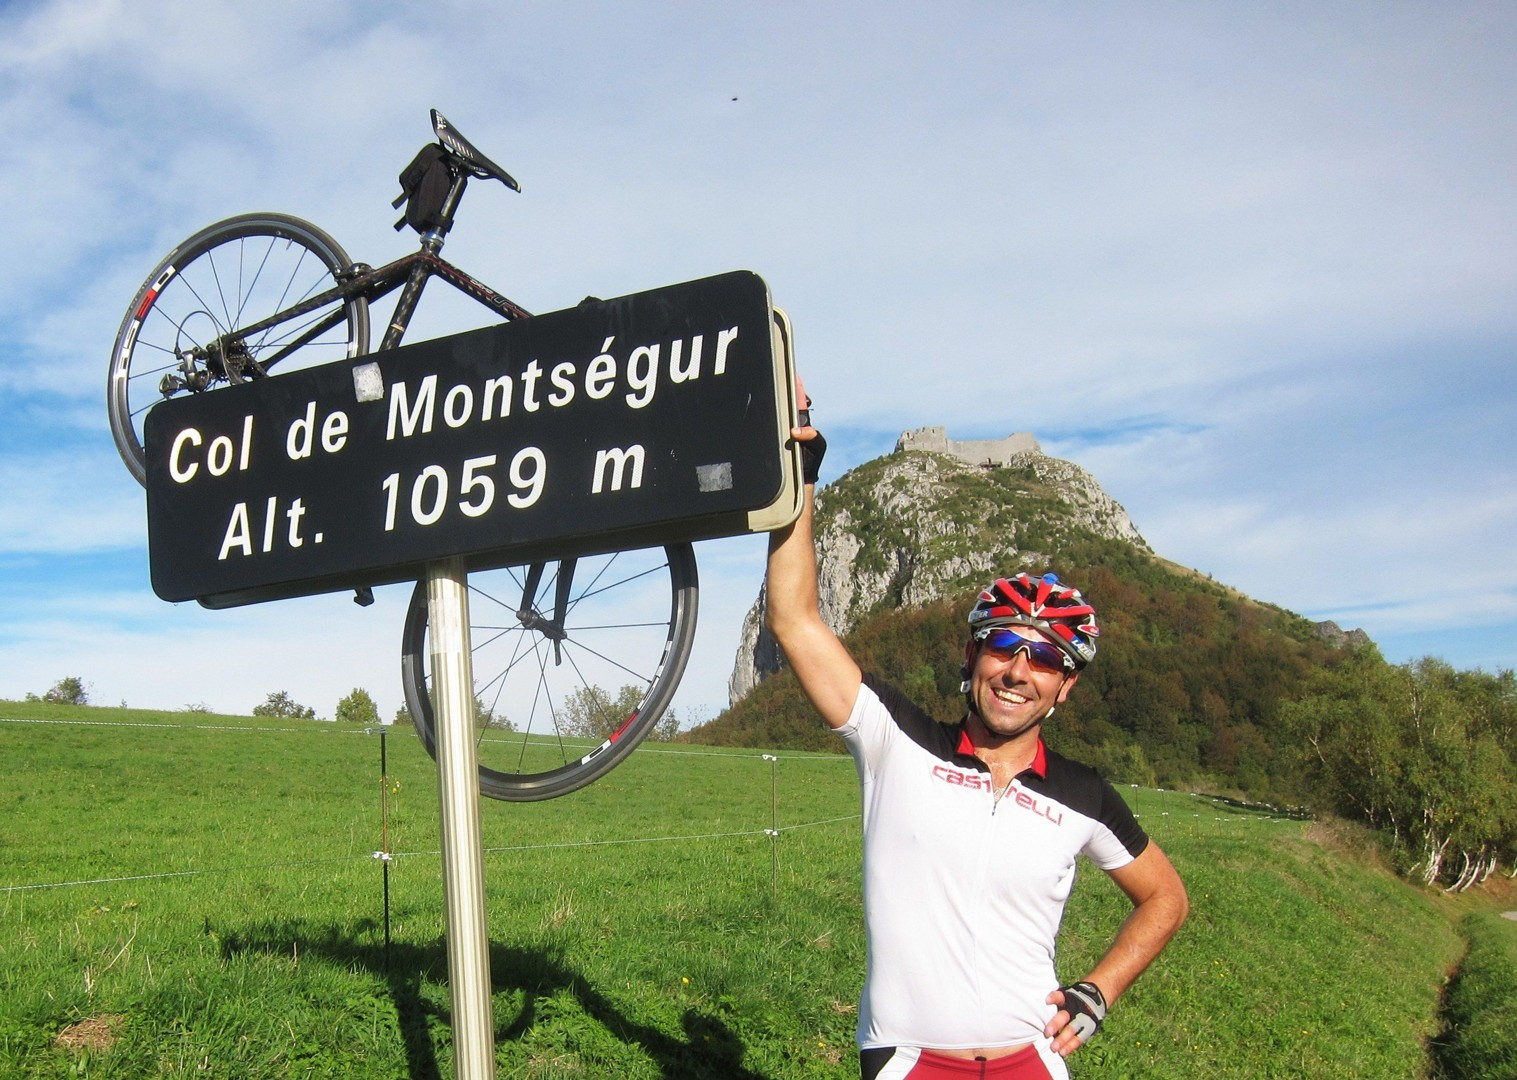 france-fitness-week-guided-cycling-holiday.jpg - France - Pyrenees Fitness Week - Guided Road Cycling Holiday (Grade 3-4) - Road Cycling